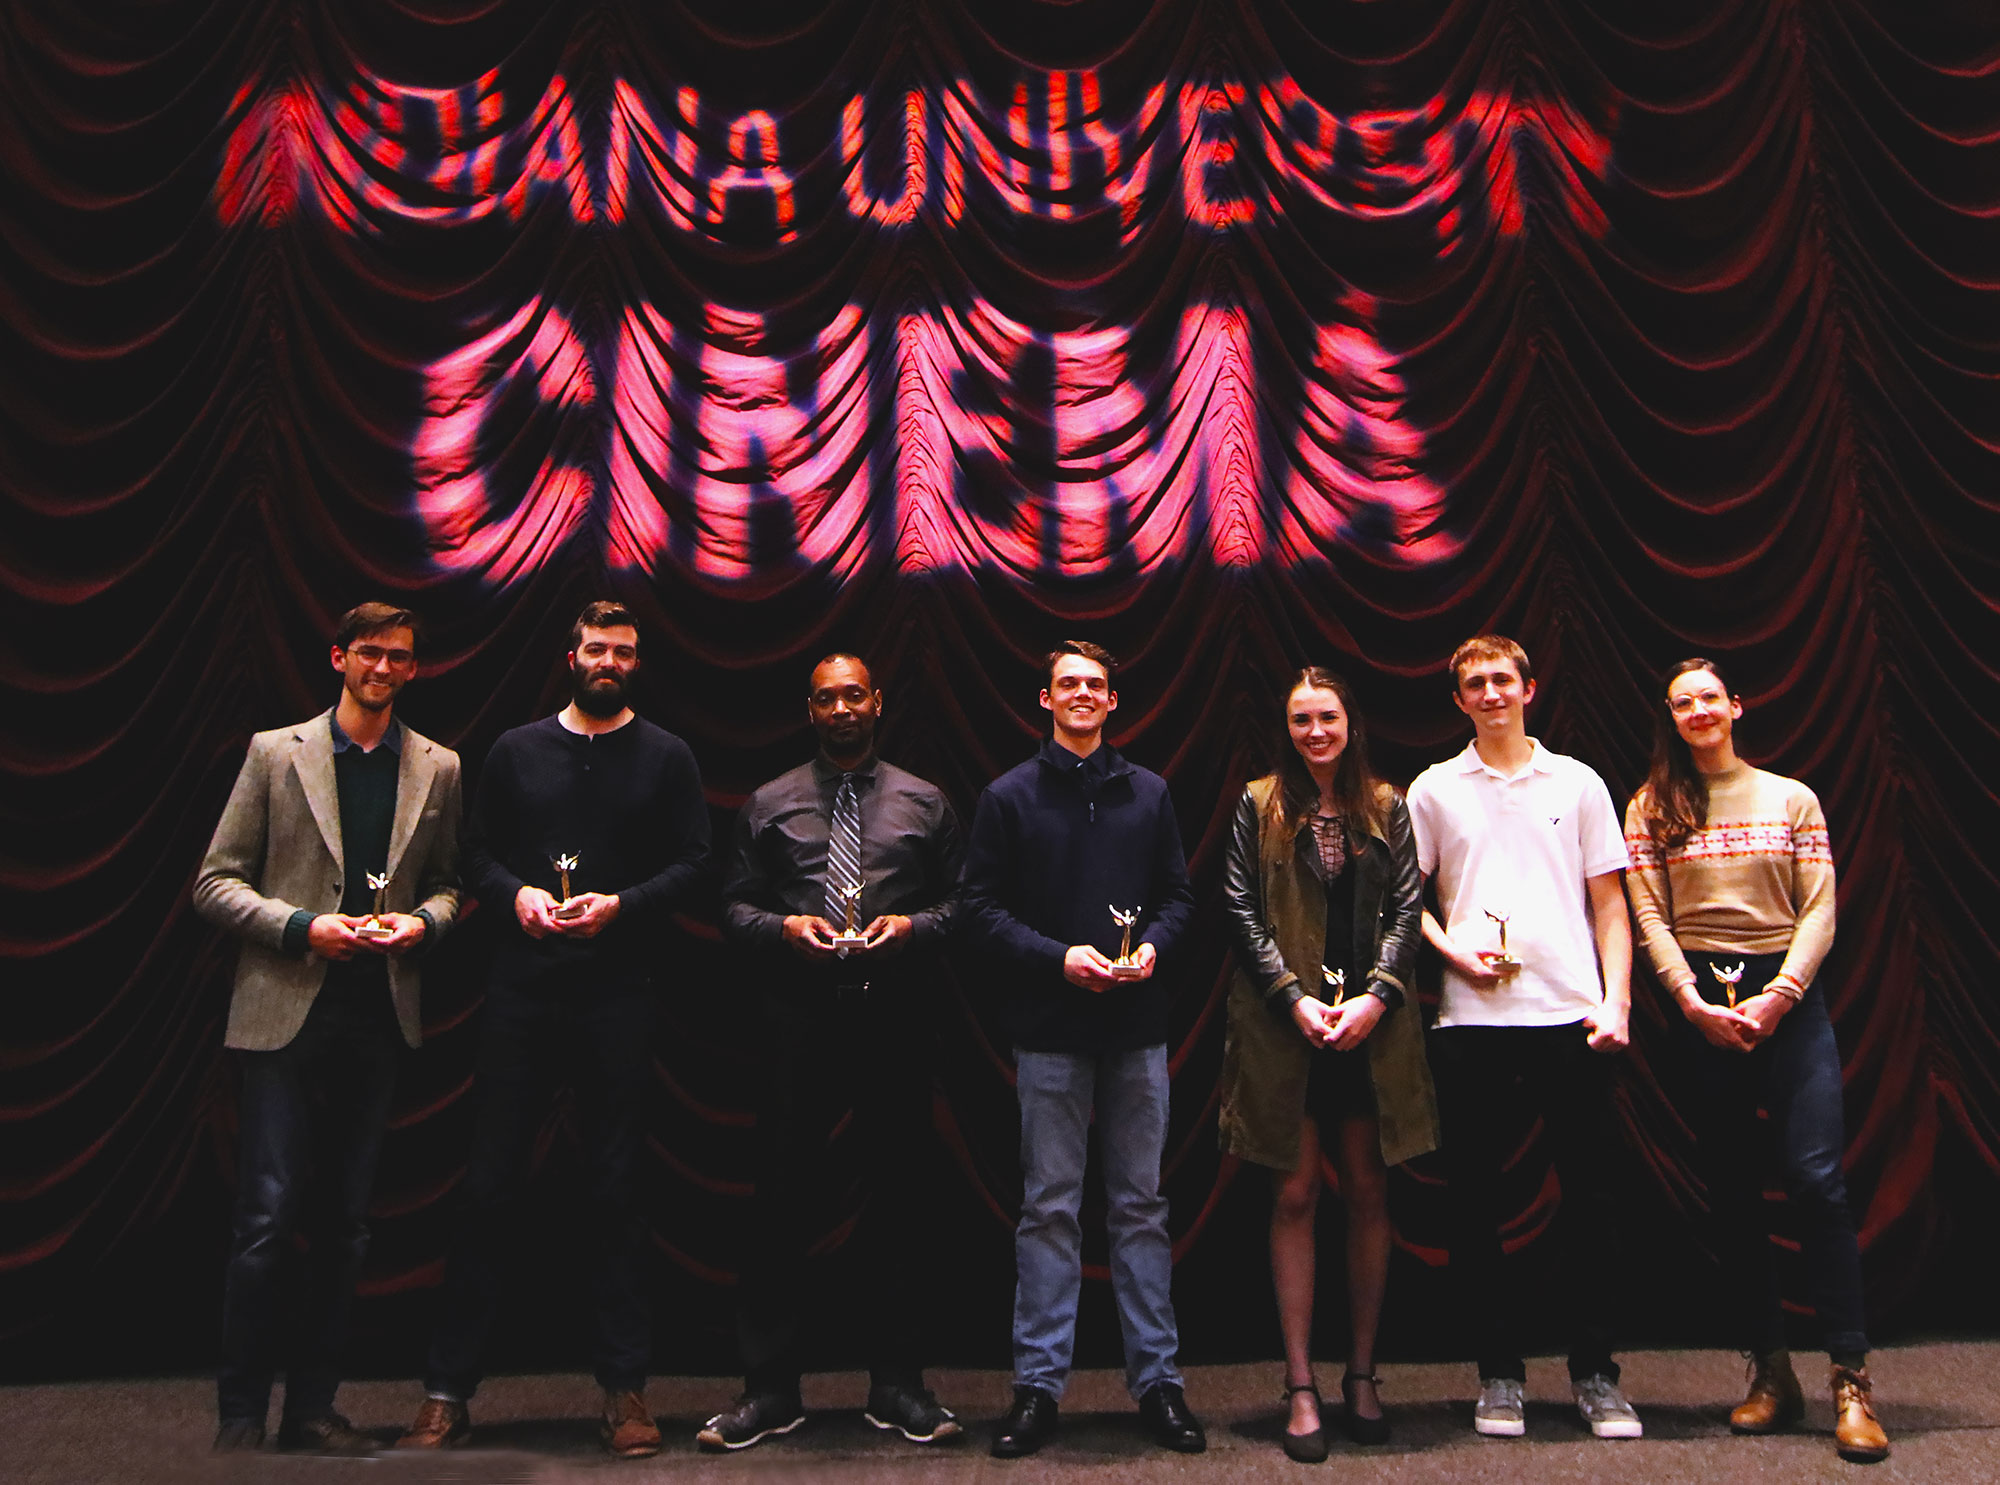 Seven students pose in front of a red theater curtain holding trophies